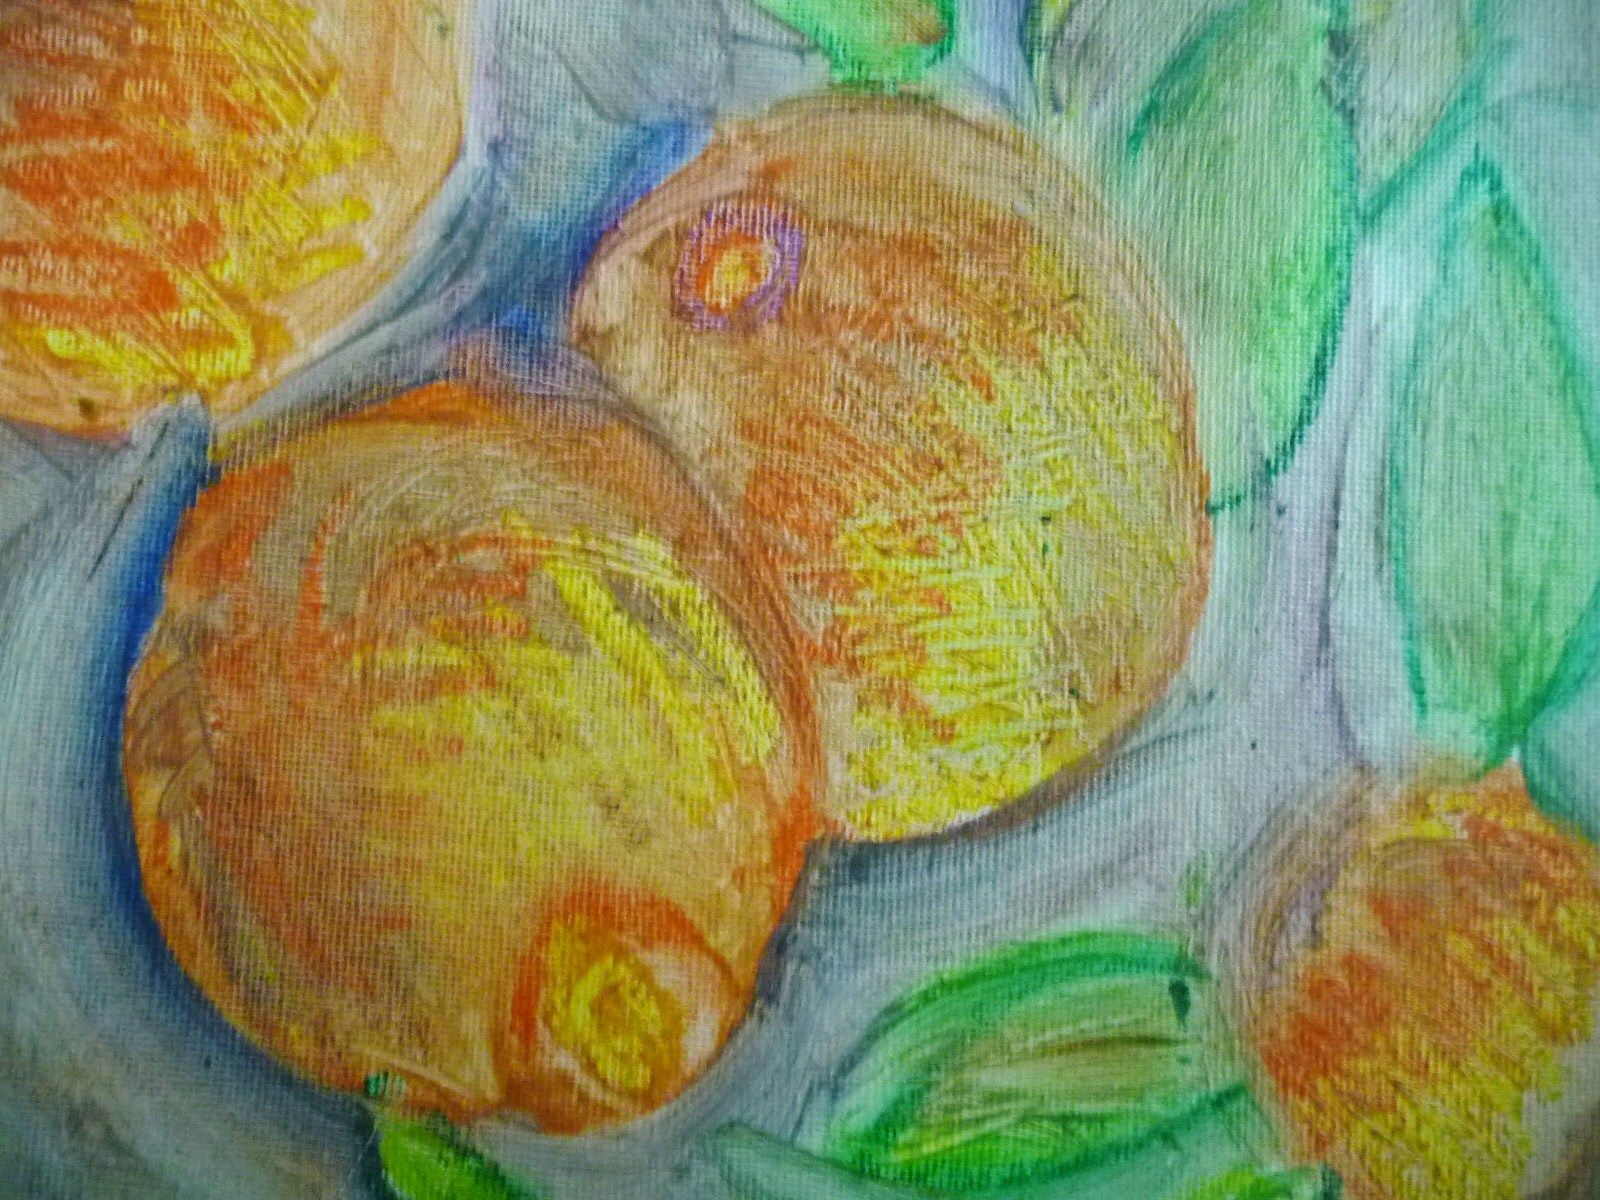 Peaches. Oil pastel and oil medium on canvas panel. Copyright 2012 by S. K. Cole.